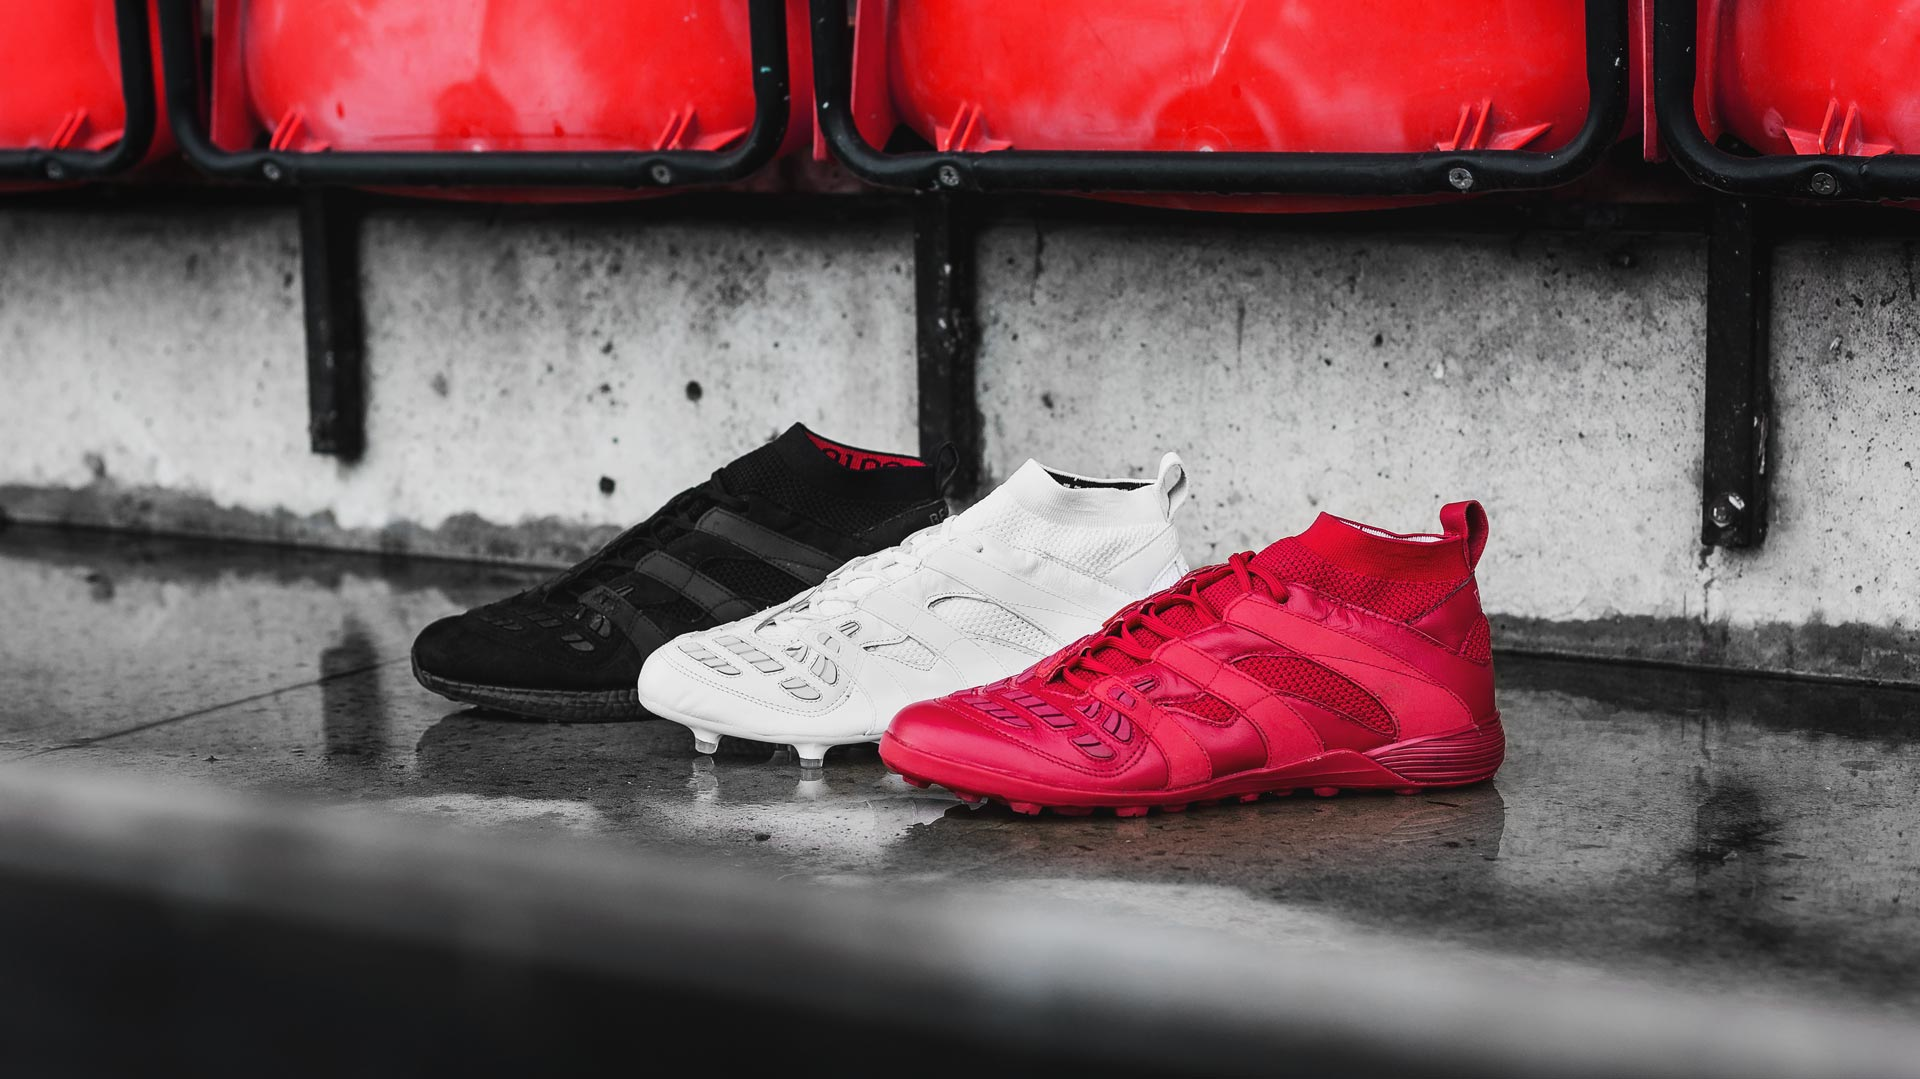 newest da443 9a124 Learn everything about the adidas x David Beckham Capsule Collection